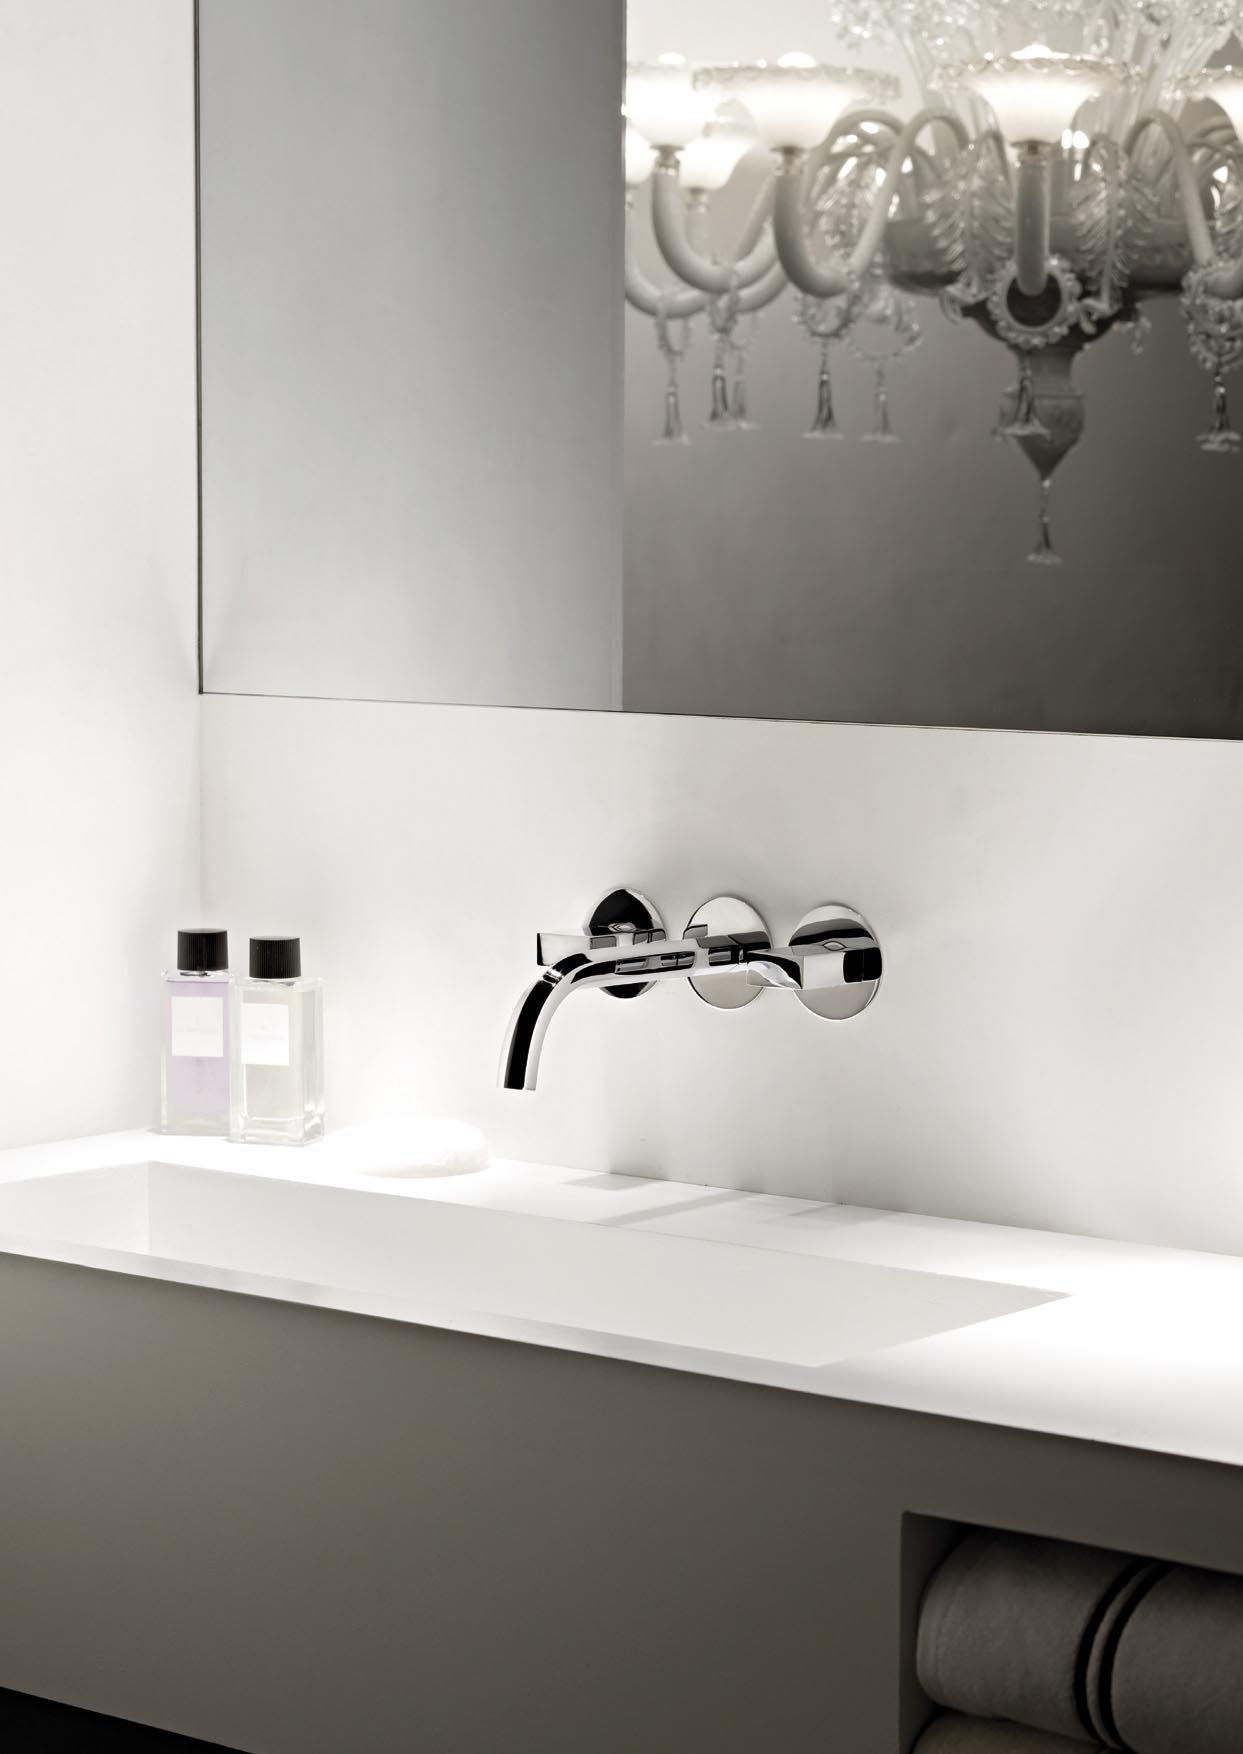 Fantini Venezia At Rogerseller The Kitchen And Bathroom Blog